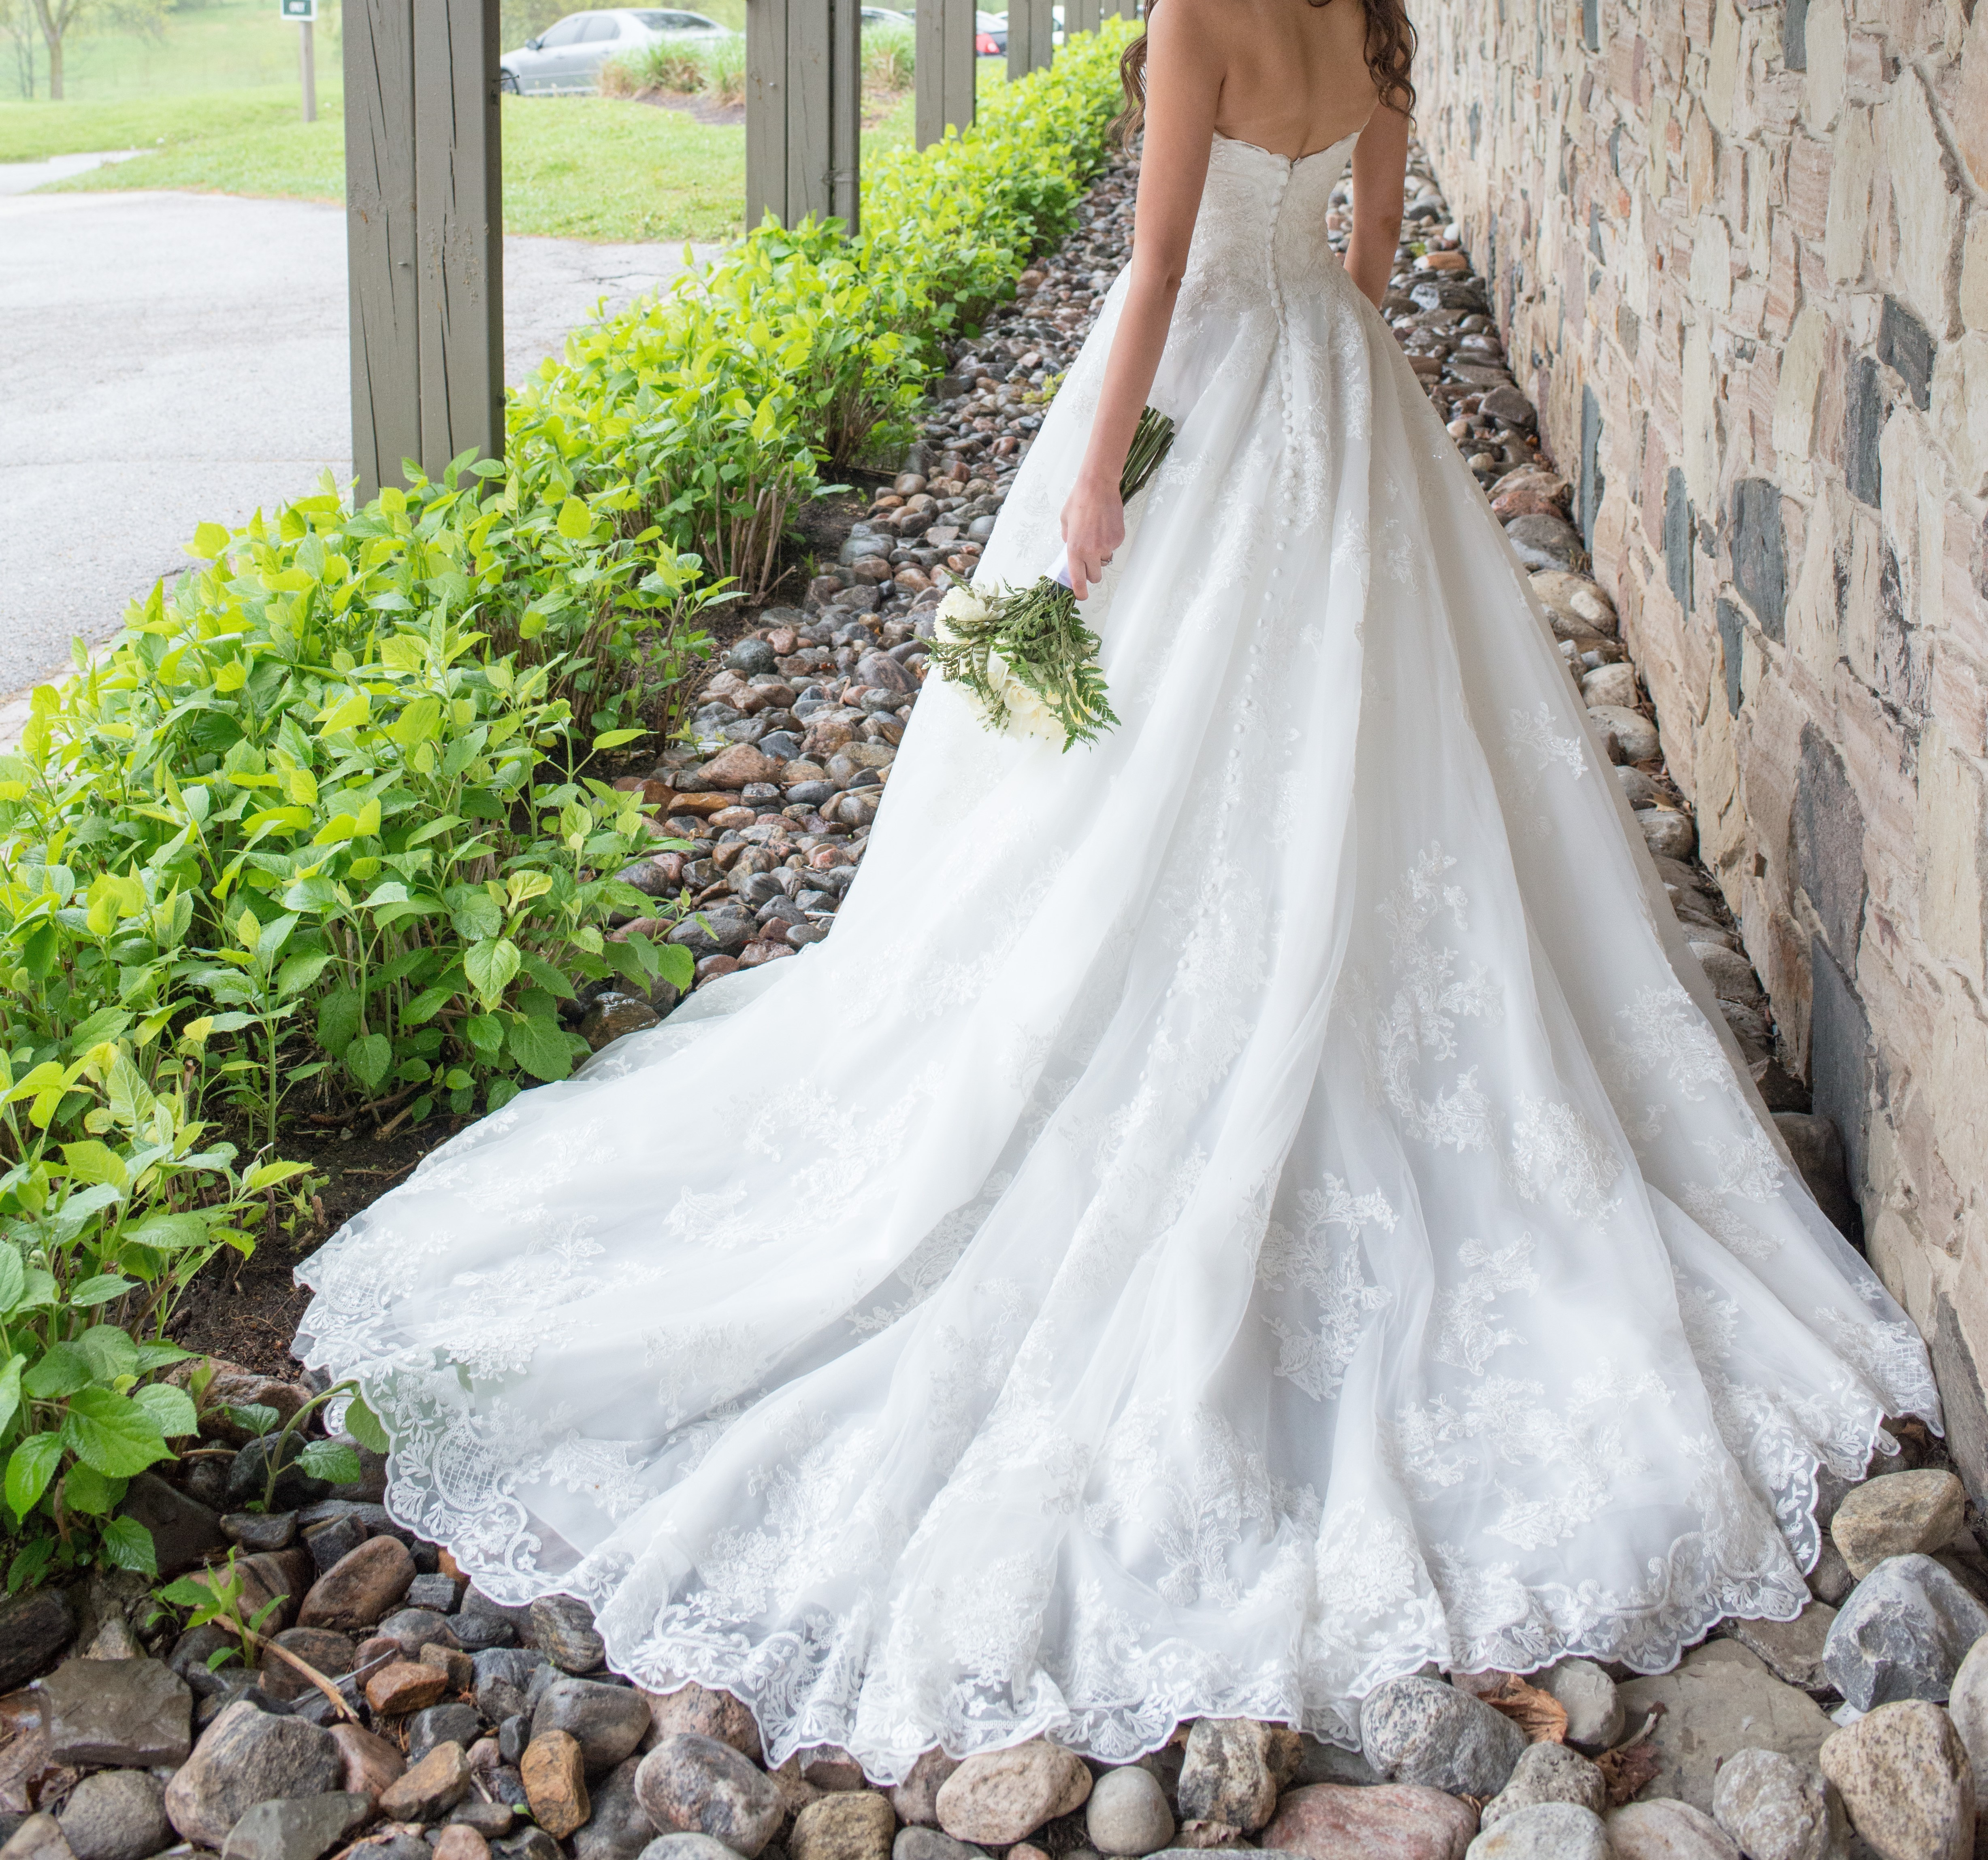 Allure bridals - n/a size 4 - $900 - (74% OFF)